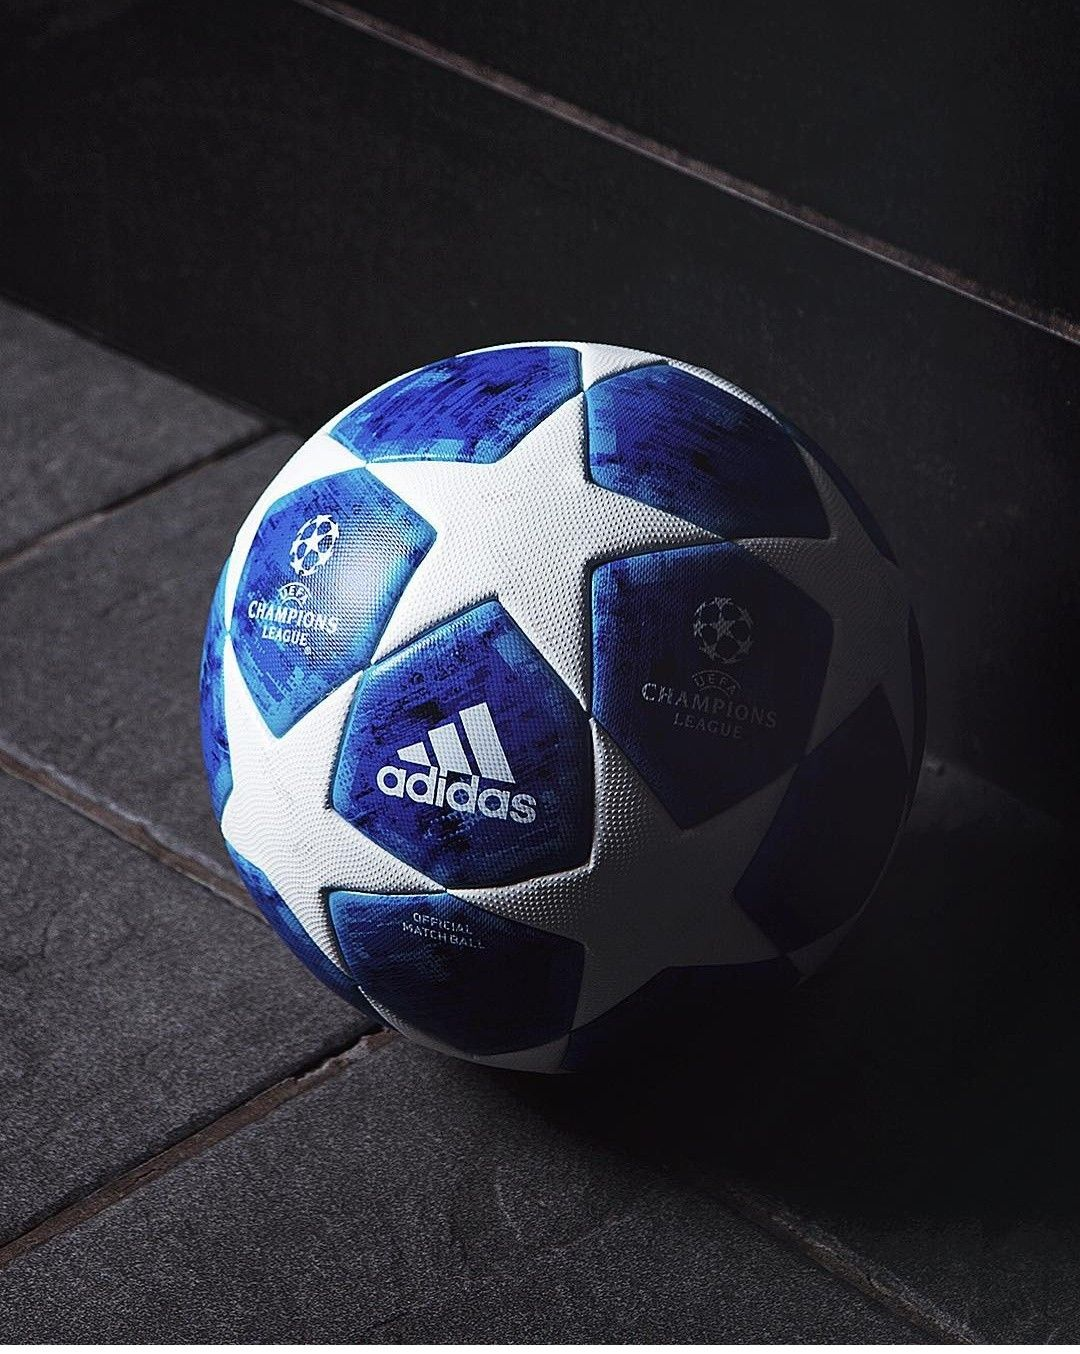 The new UCL ball release today Adidas Fußball fa730931c6e72